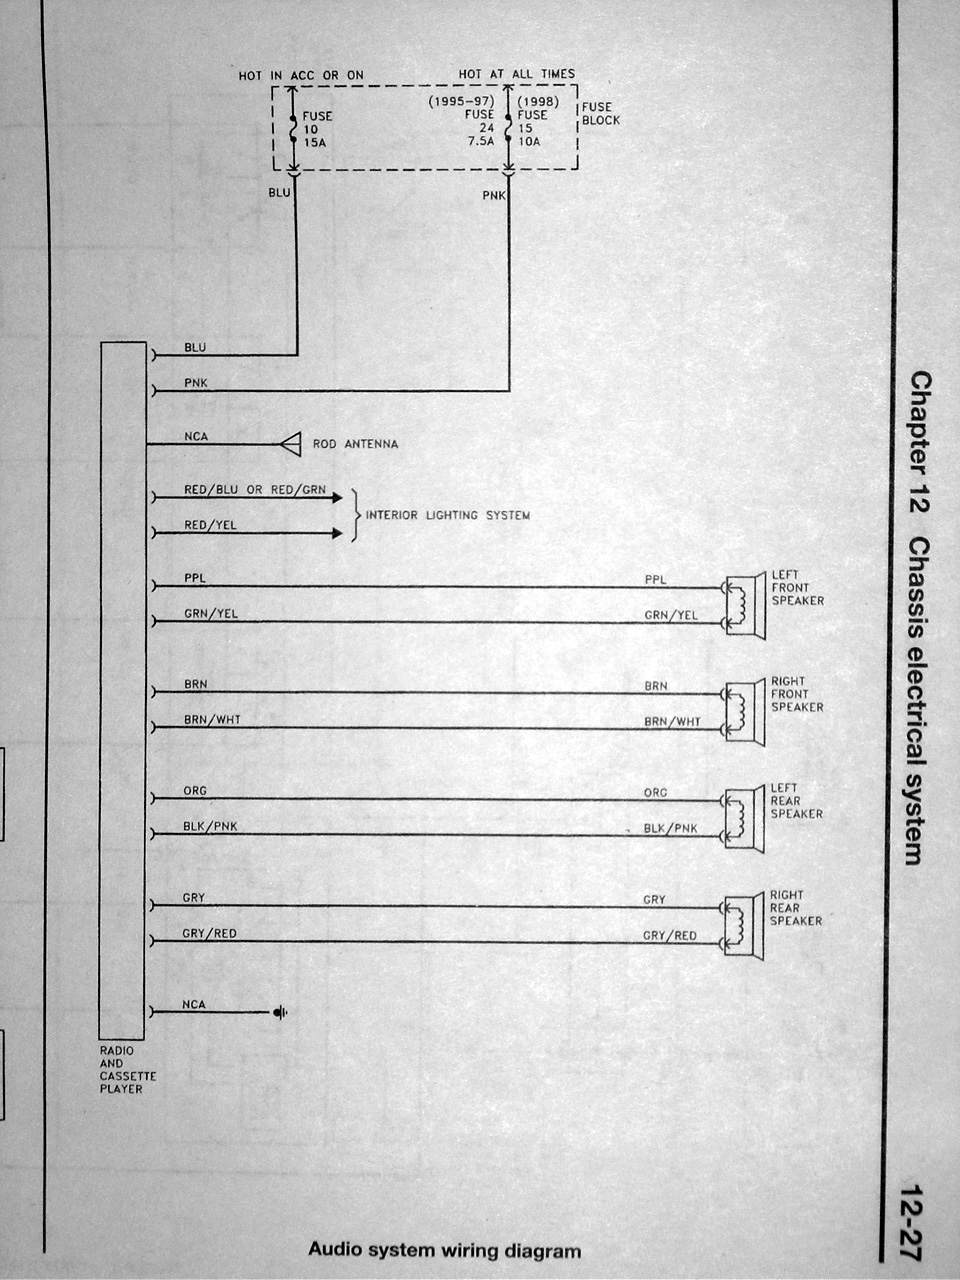 hight resolution of 2009 nissan sentra wiring diagram trusted schematics diagram rh propeller sf com 1995 nissan sentra fuse